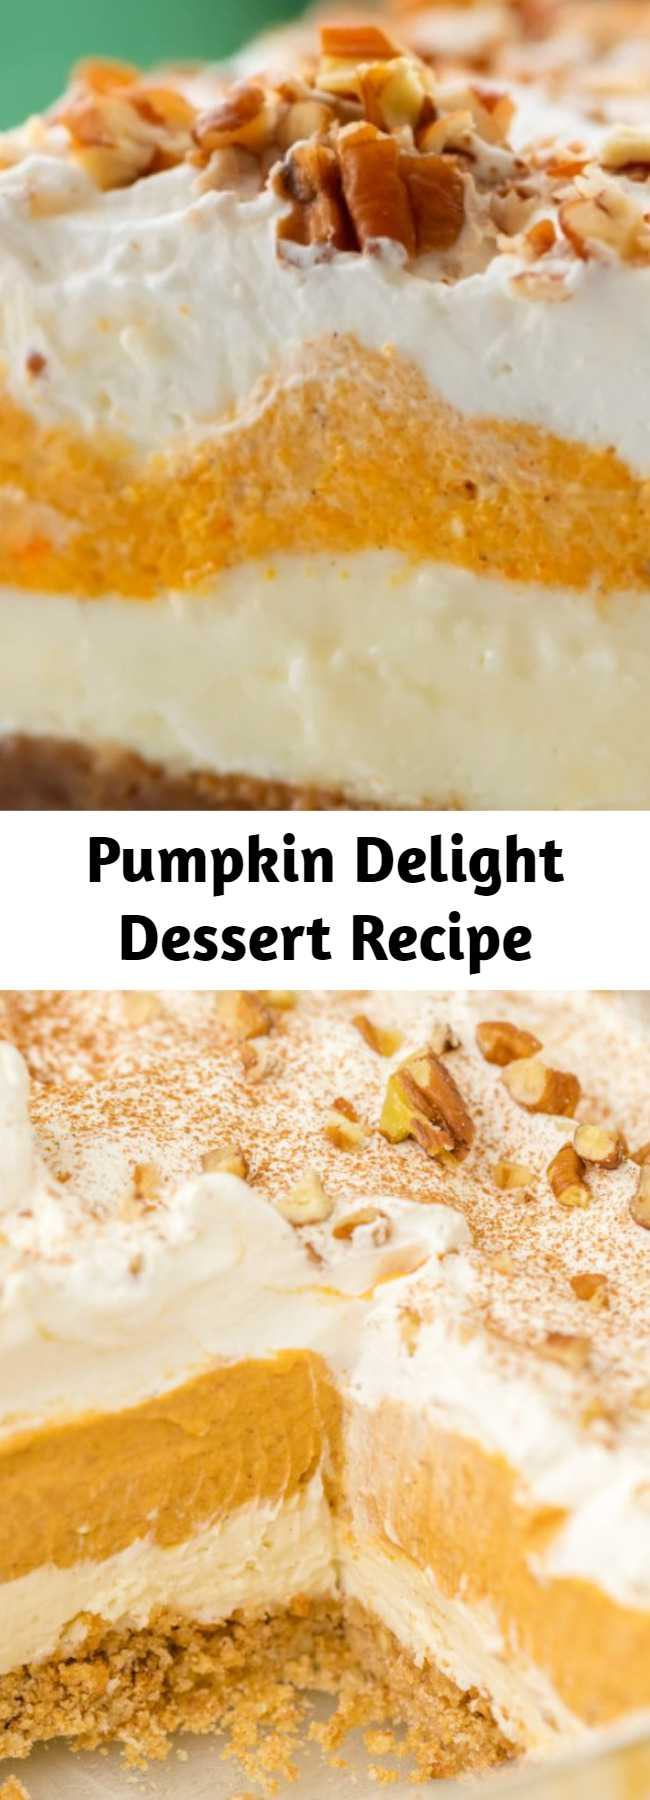 Pumpkin Delight Dessert Recipe - Instead of classic pumpkin pie this fall (or Thanksgiving!), try this easy pumpkin delight instead! A homemade pecan and graham cracker mix forms a crust that is topped with layers of light and fluffy filling including cream cheese, pudding, and Cool Whip make an irresistible treat.